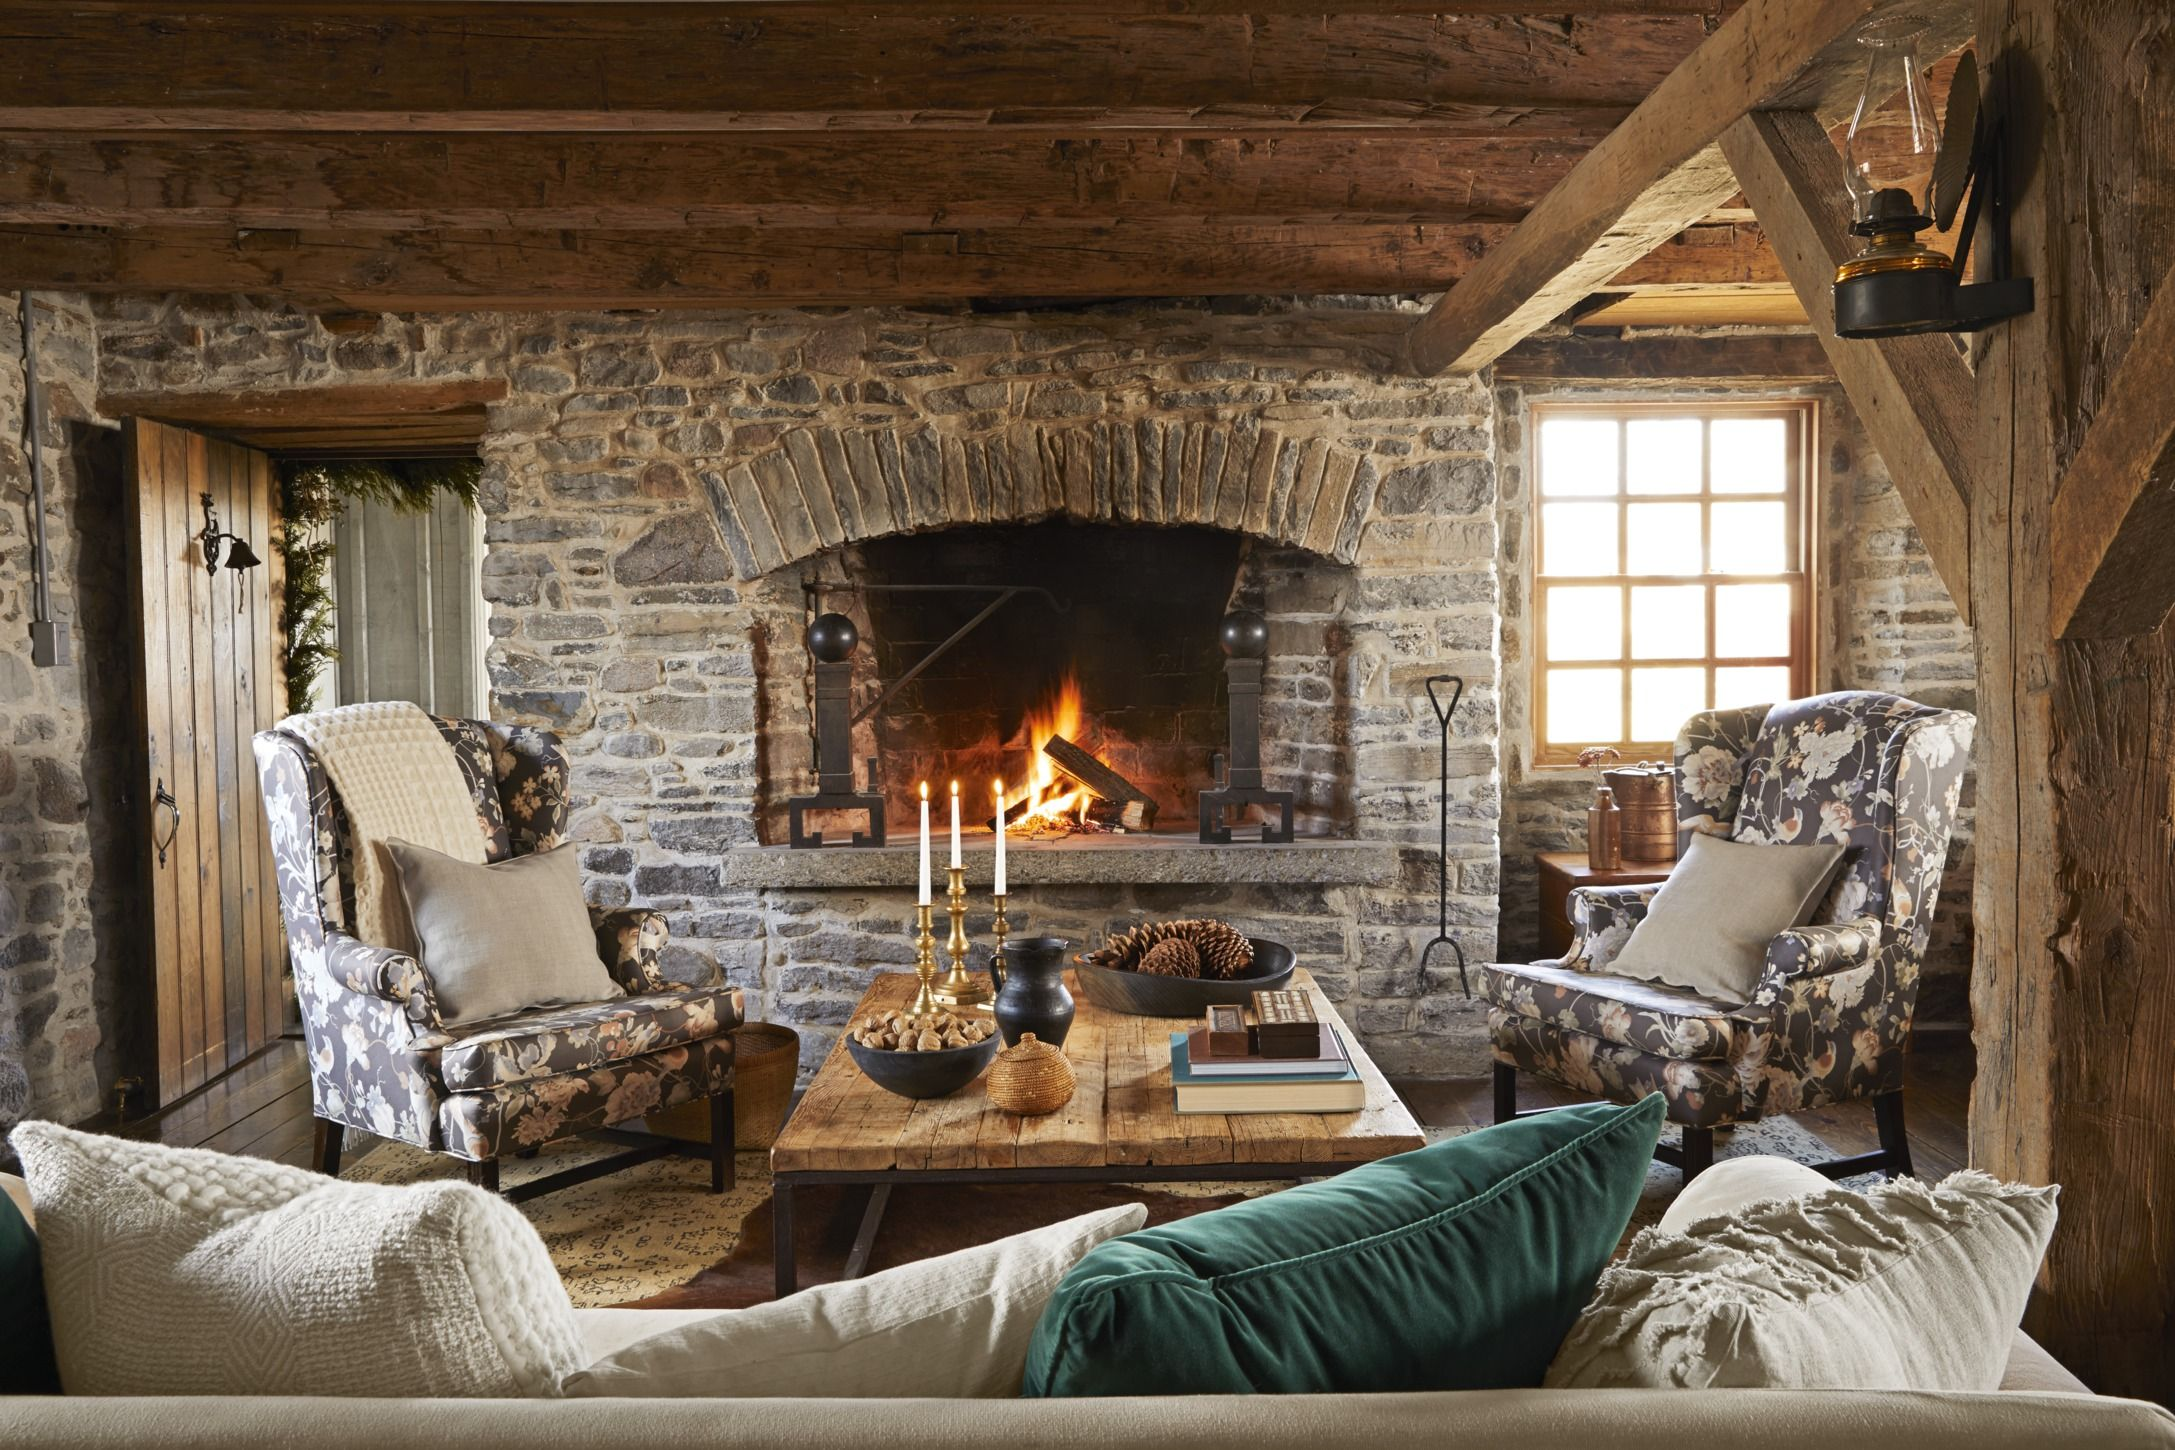 This Cozy Farmhouse Has Something Called a 'Snug Room' and Now We Want One